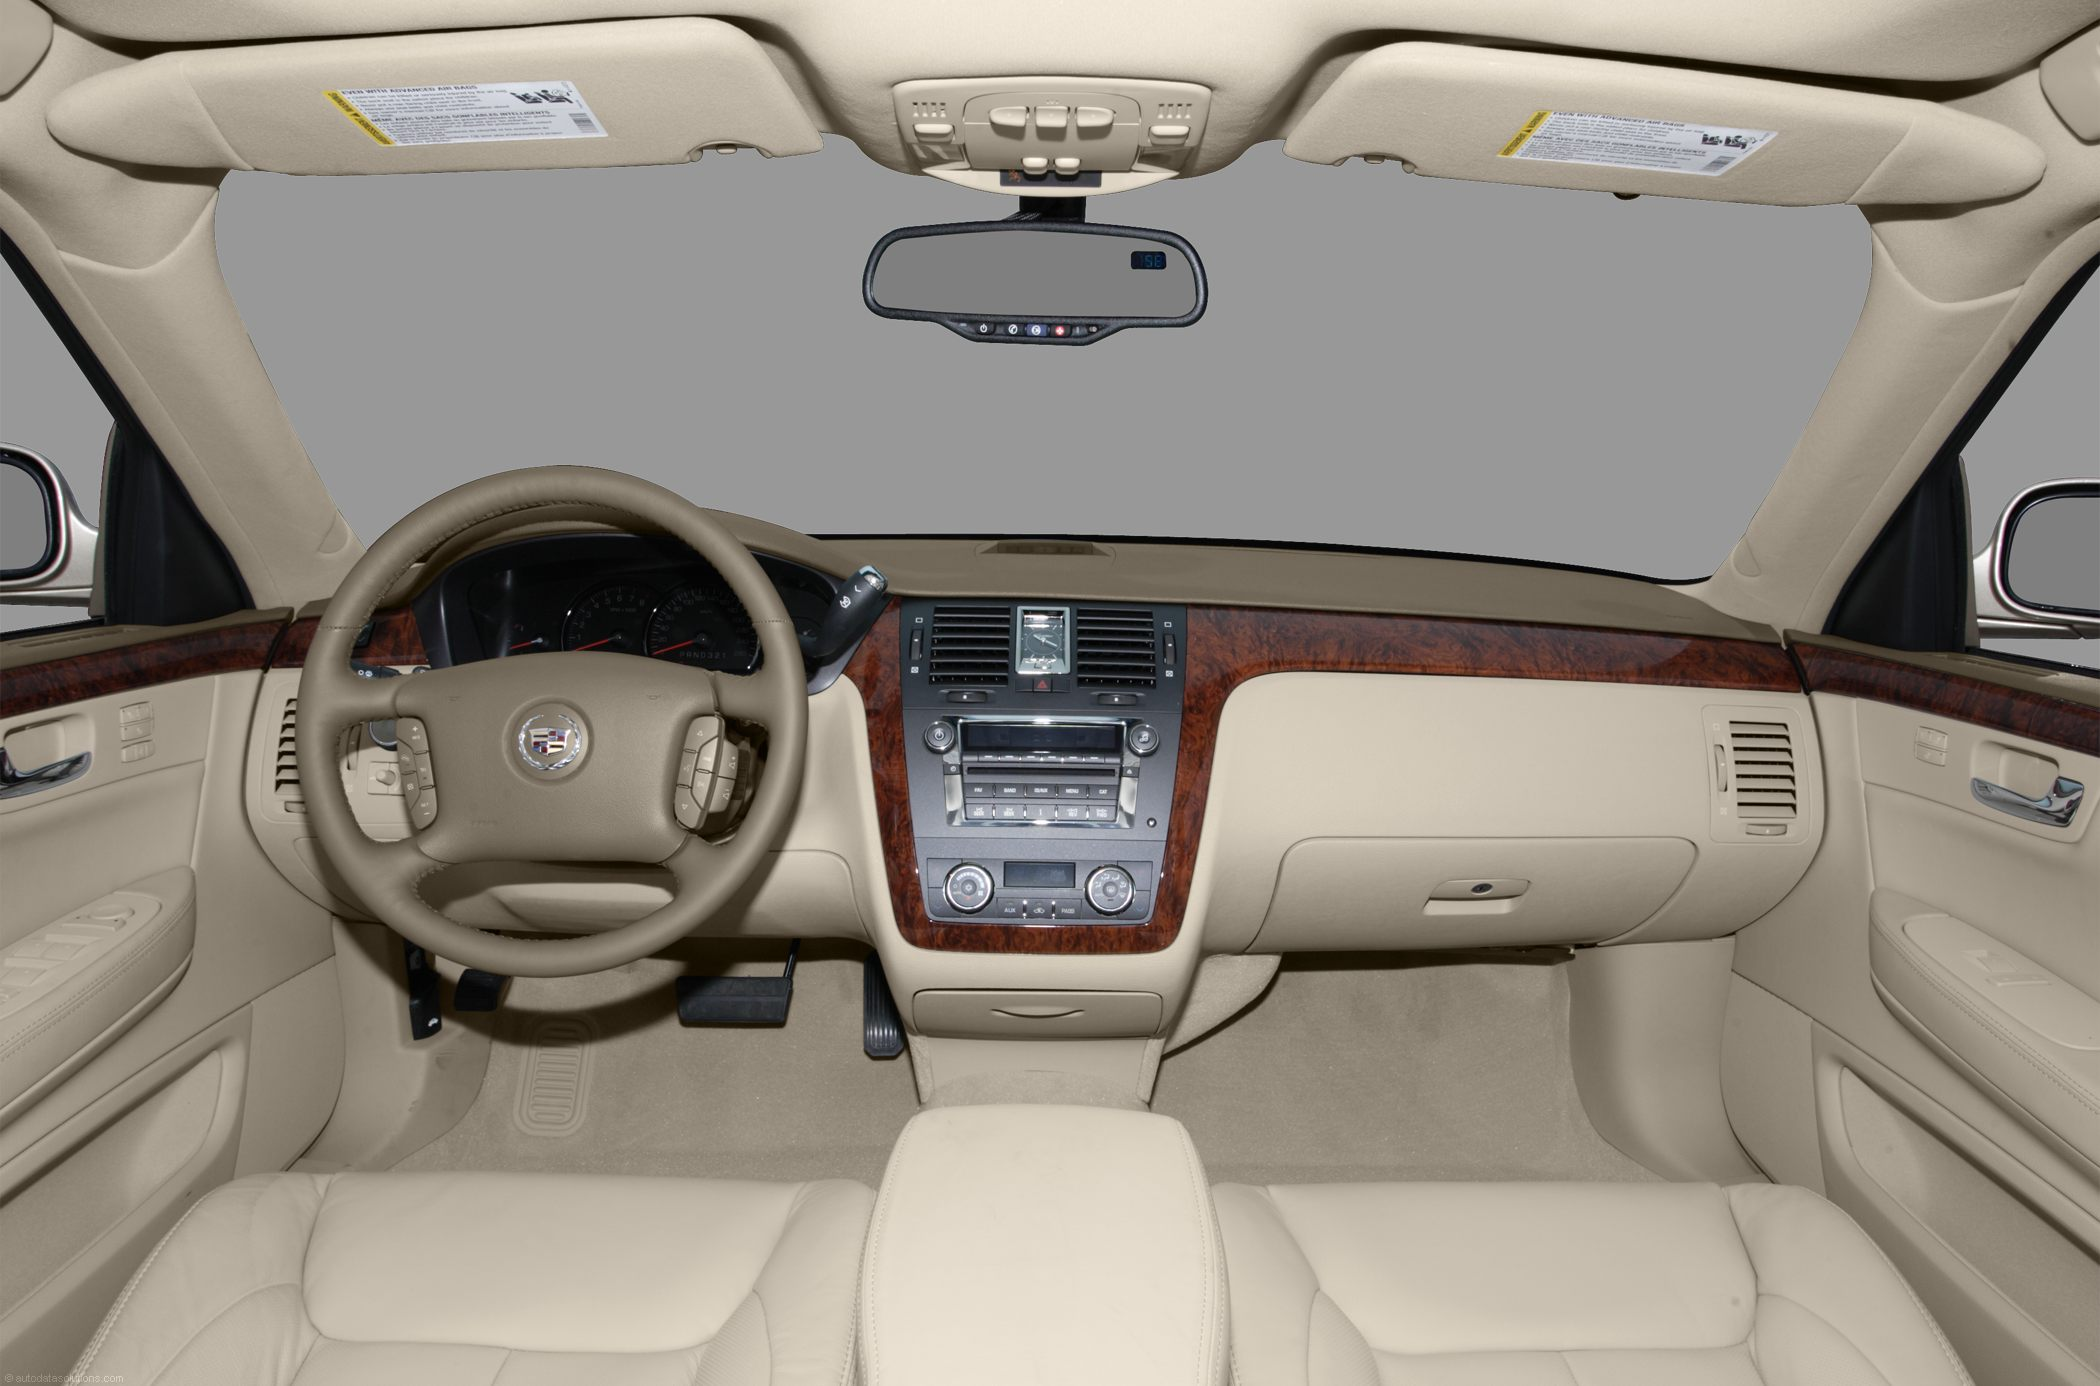 colors specs dts com configuration our cadillac is wondering right research which trims for you cars